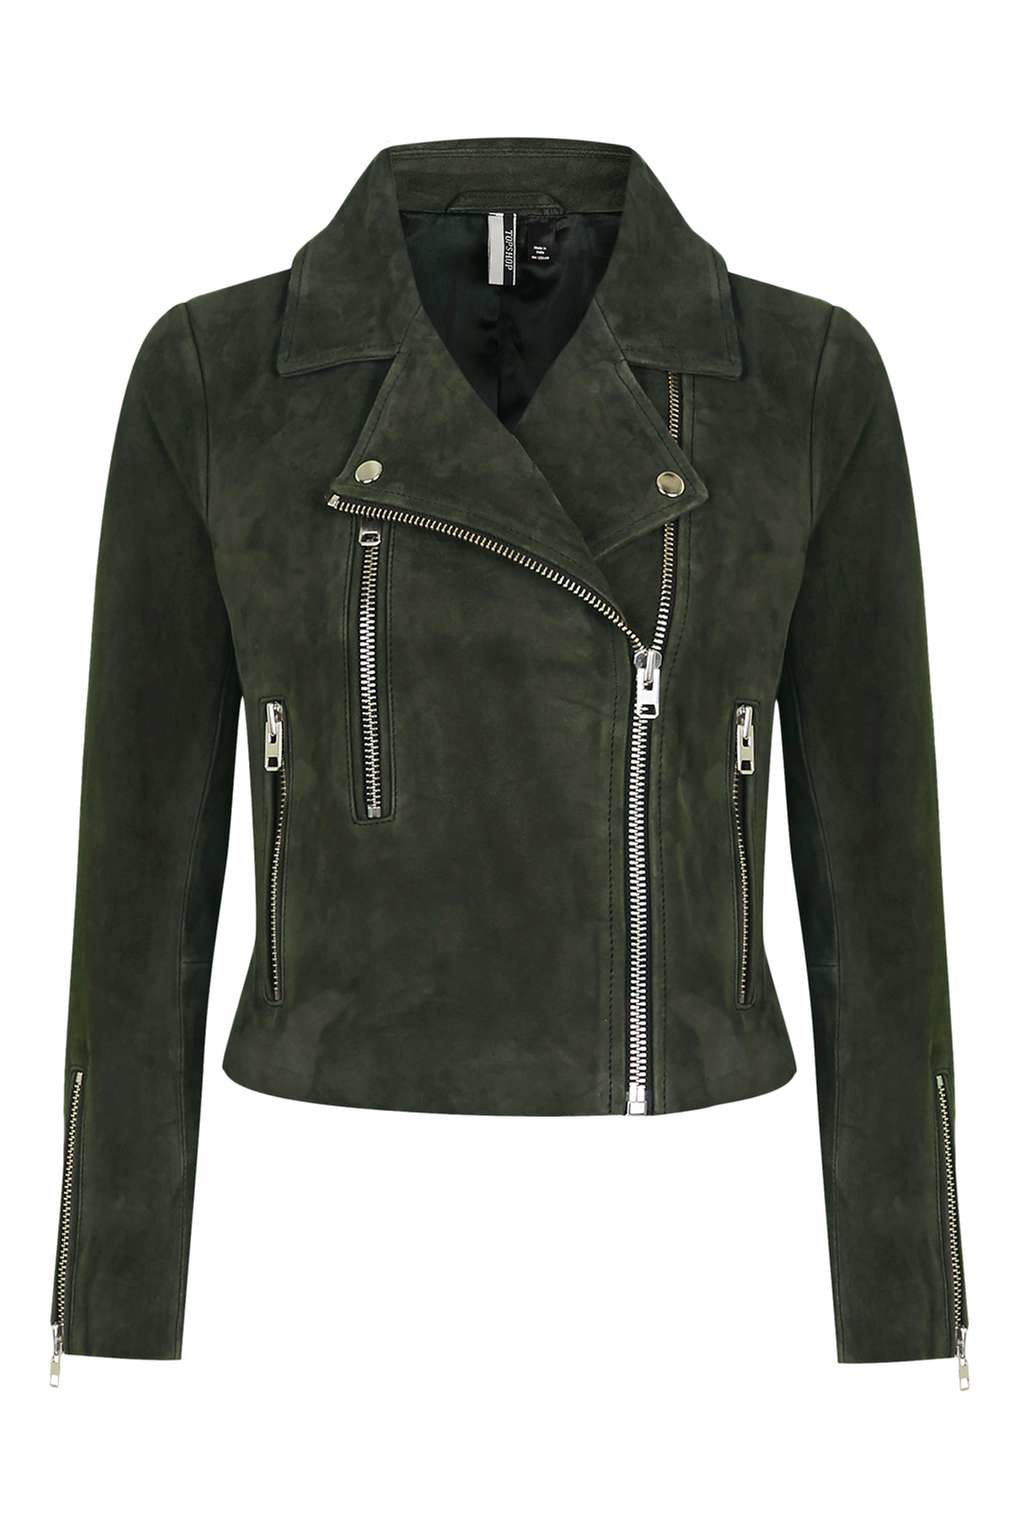 lyst topshop suede biker jacket in brown. Black Bedroom Furniture Sets. Home Design Ideas